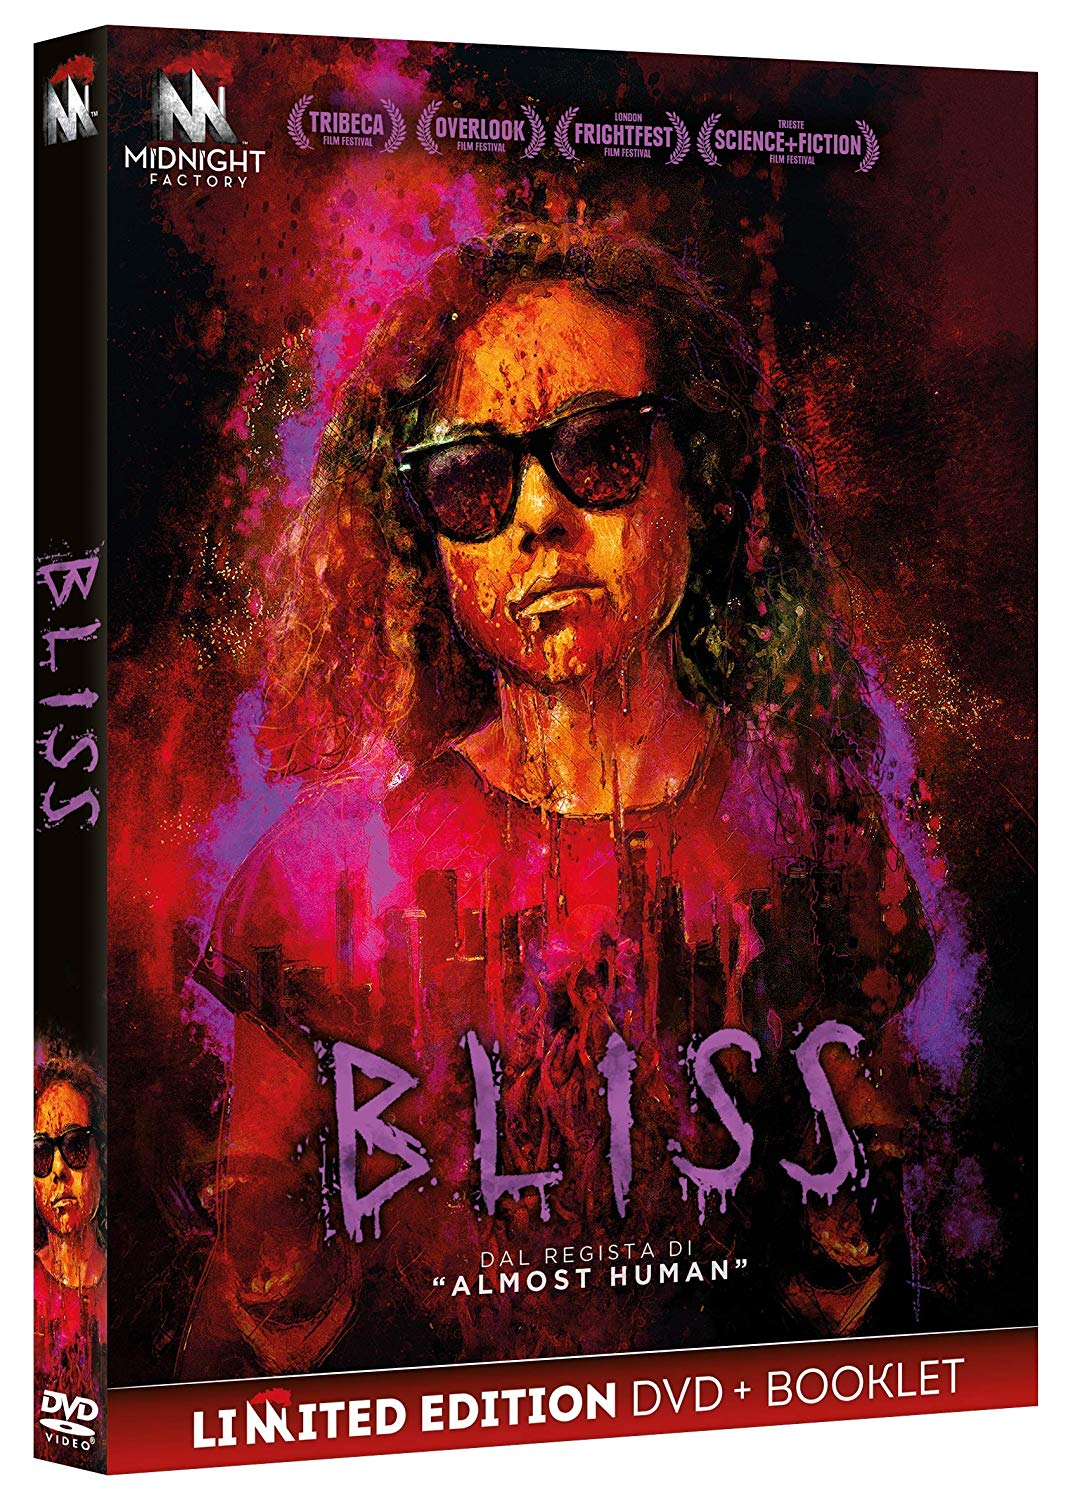 BLISS (LTD) (DVD+BOOKLET) (DVD)